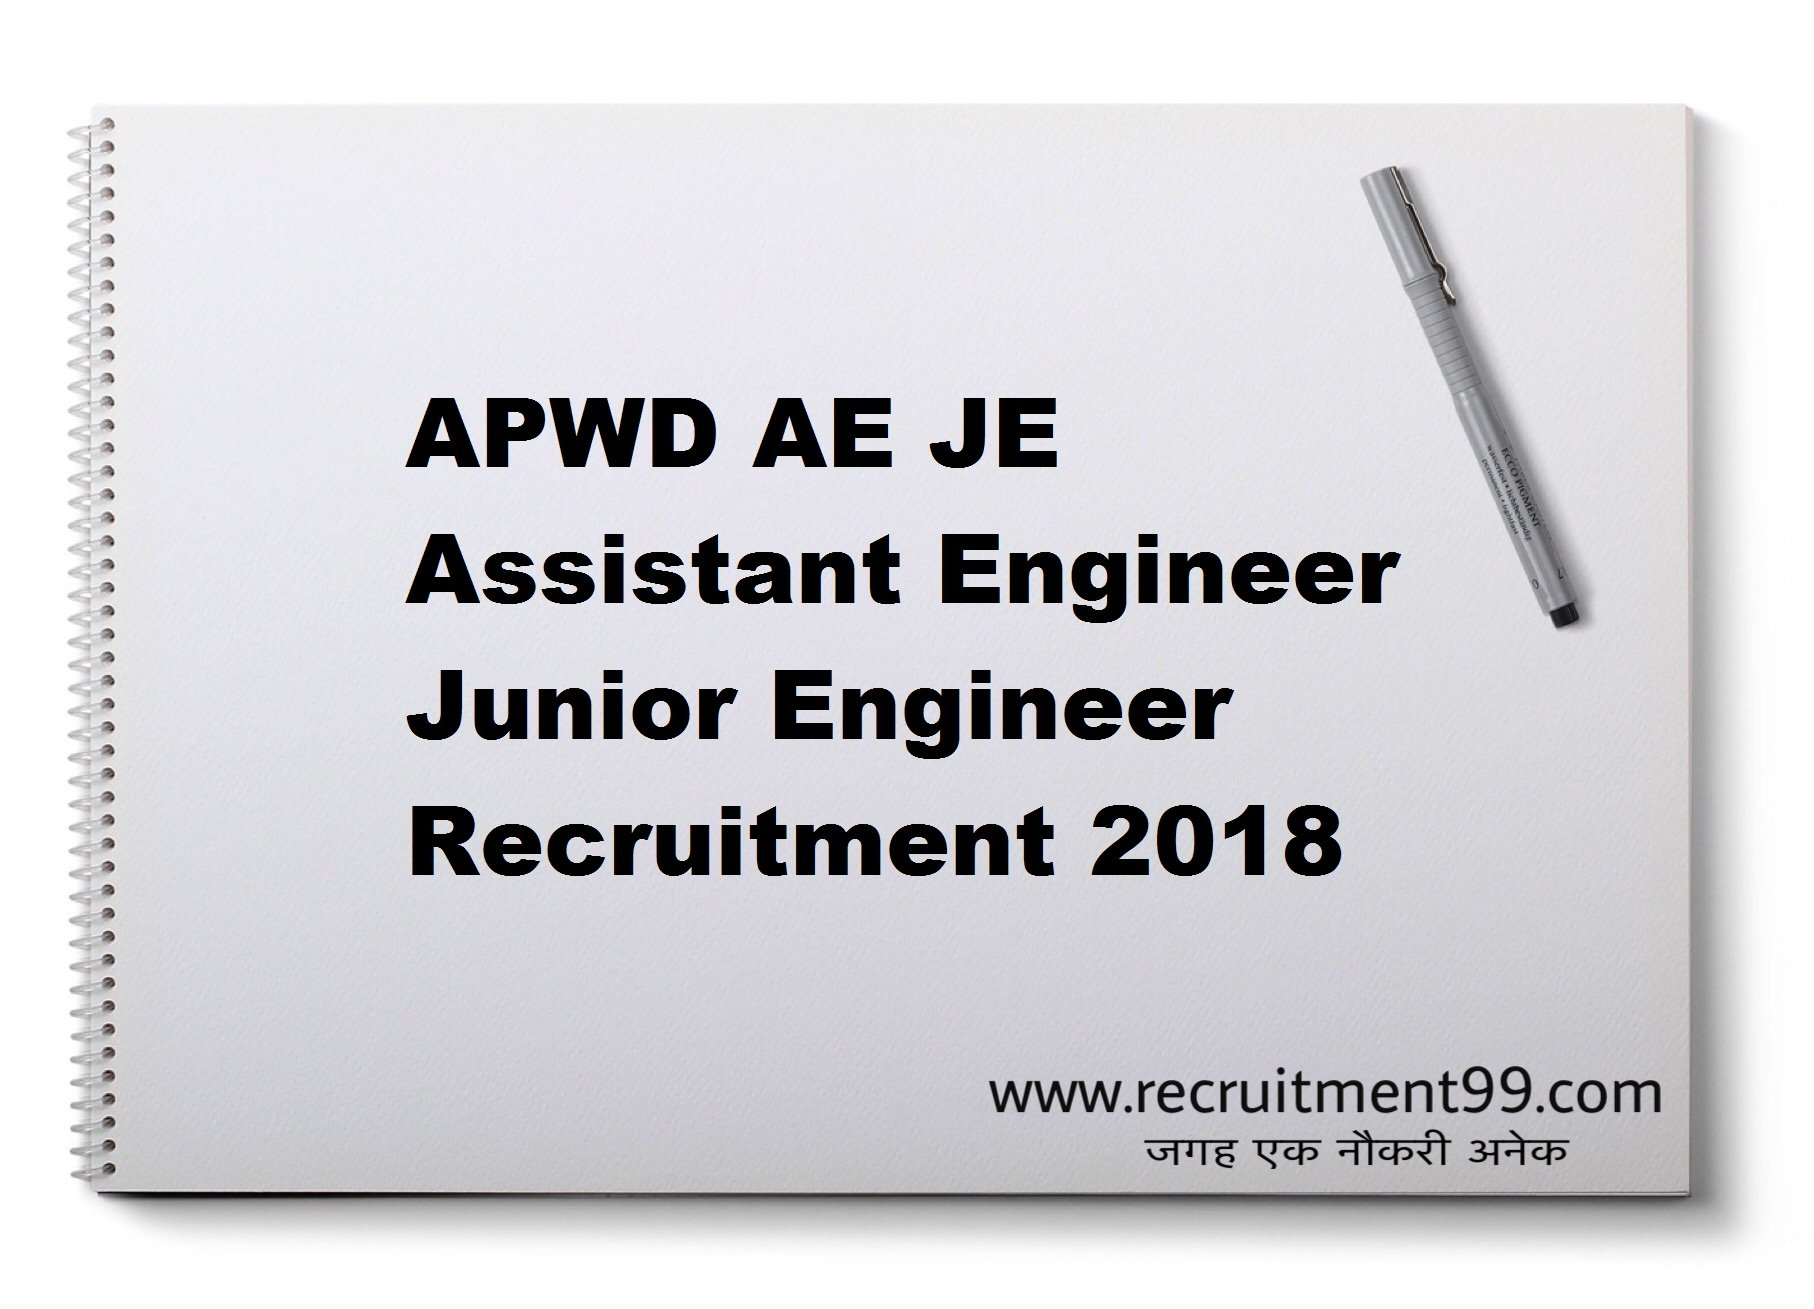 APWD AE JE Assistant Engineer Junior Engineer Recruitment Admit Card Result 2018